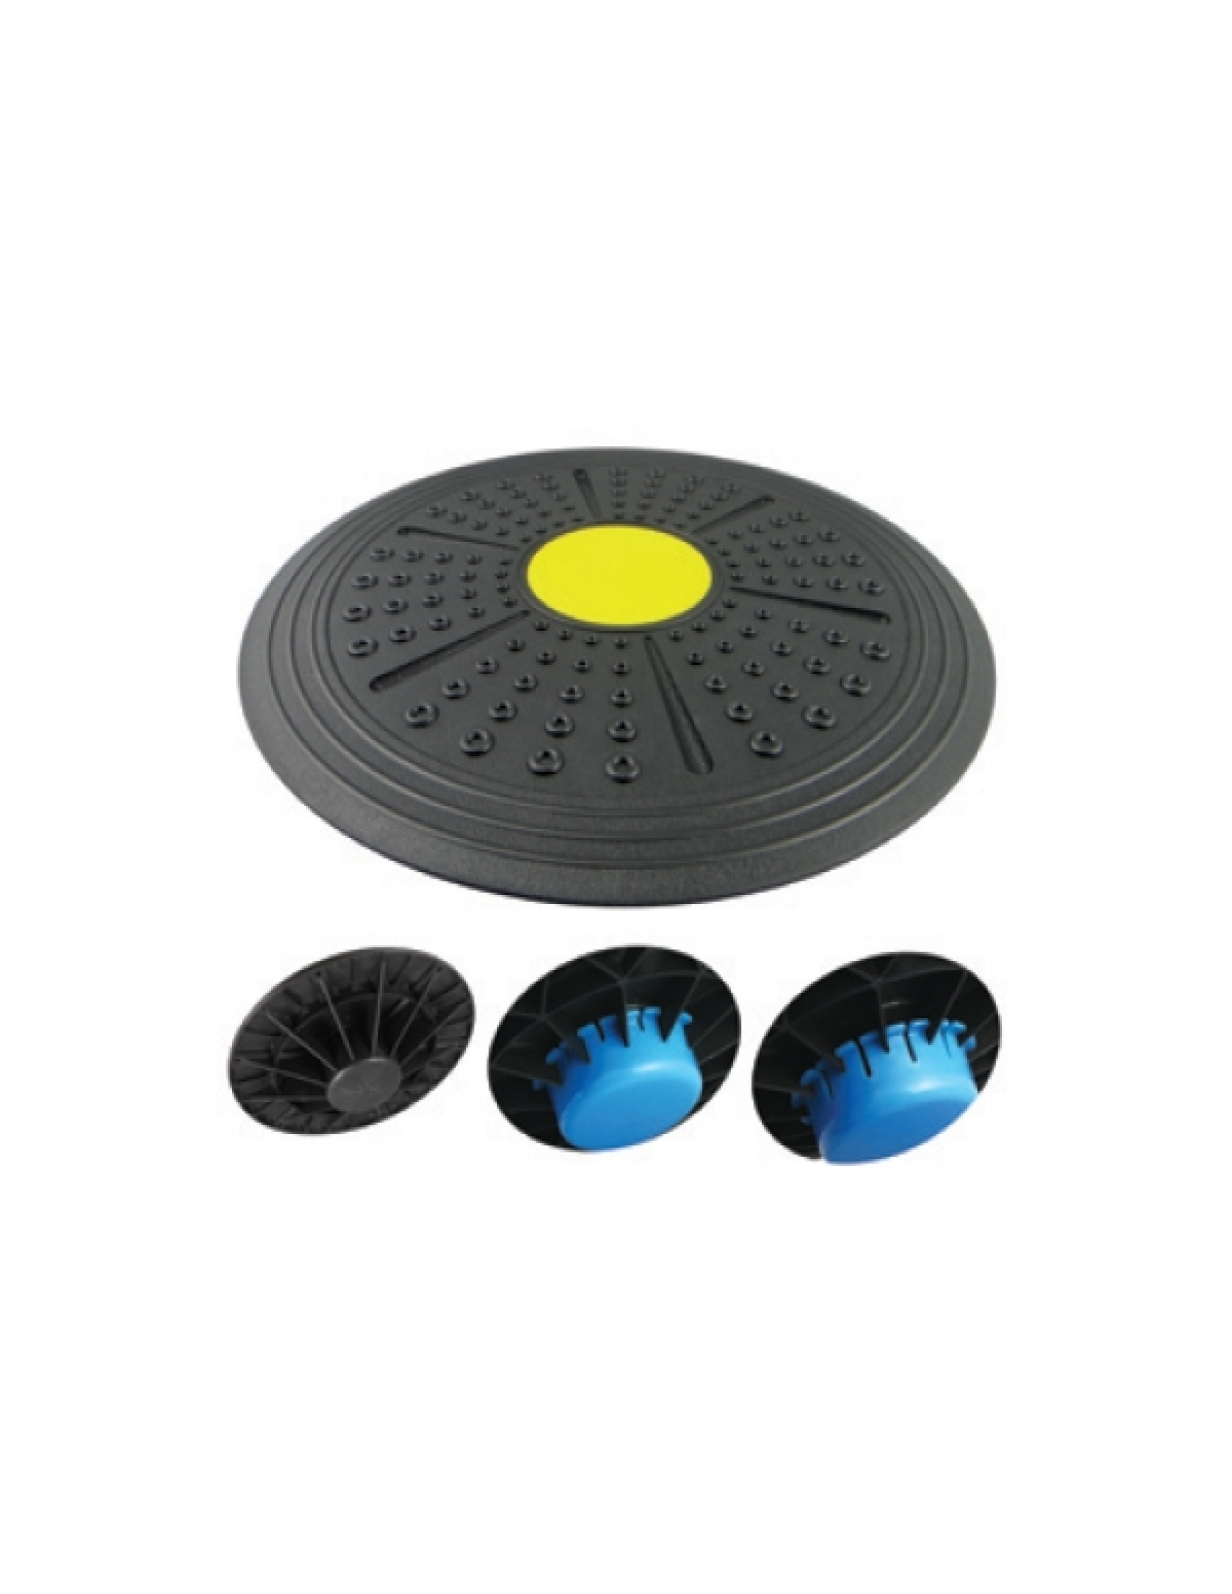 W 1461 3-LEVEL ADJUSTABLE BALANCE BOARD